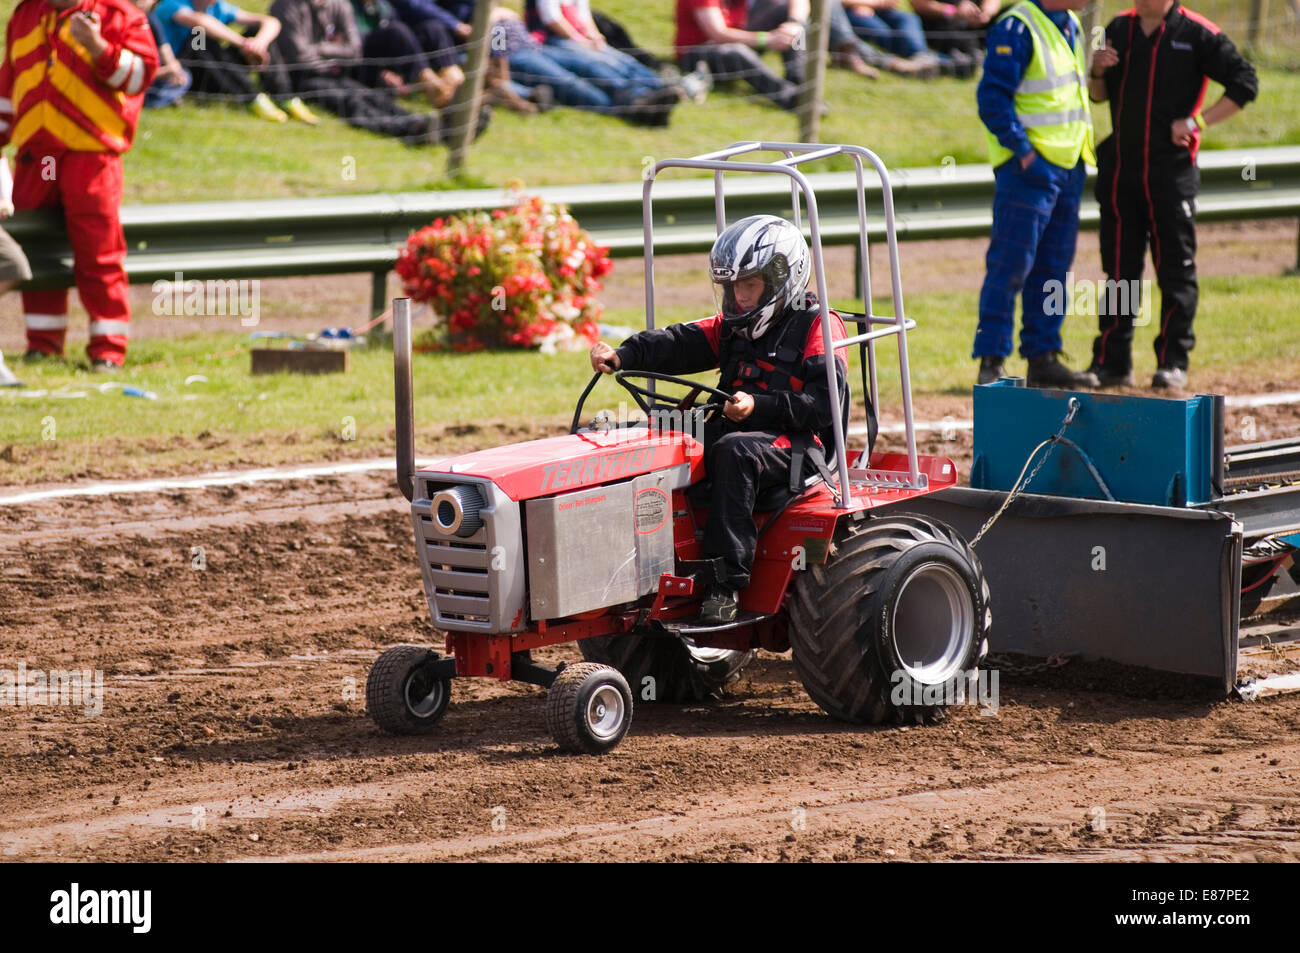 Maybe you've considered several options but aren't sure how to decide. Junior Tractor Pulling Puller Pullers Children Child Kid Kids Class Classes Lawn Tractors Mini Stock Photo Alamy